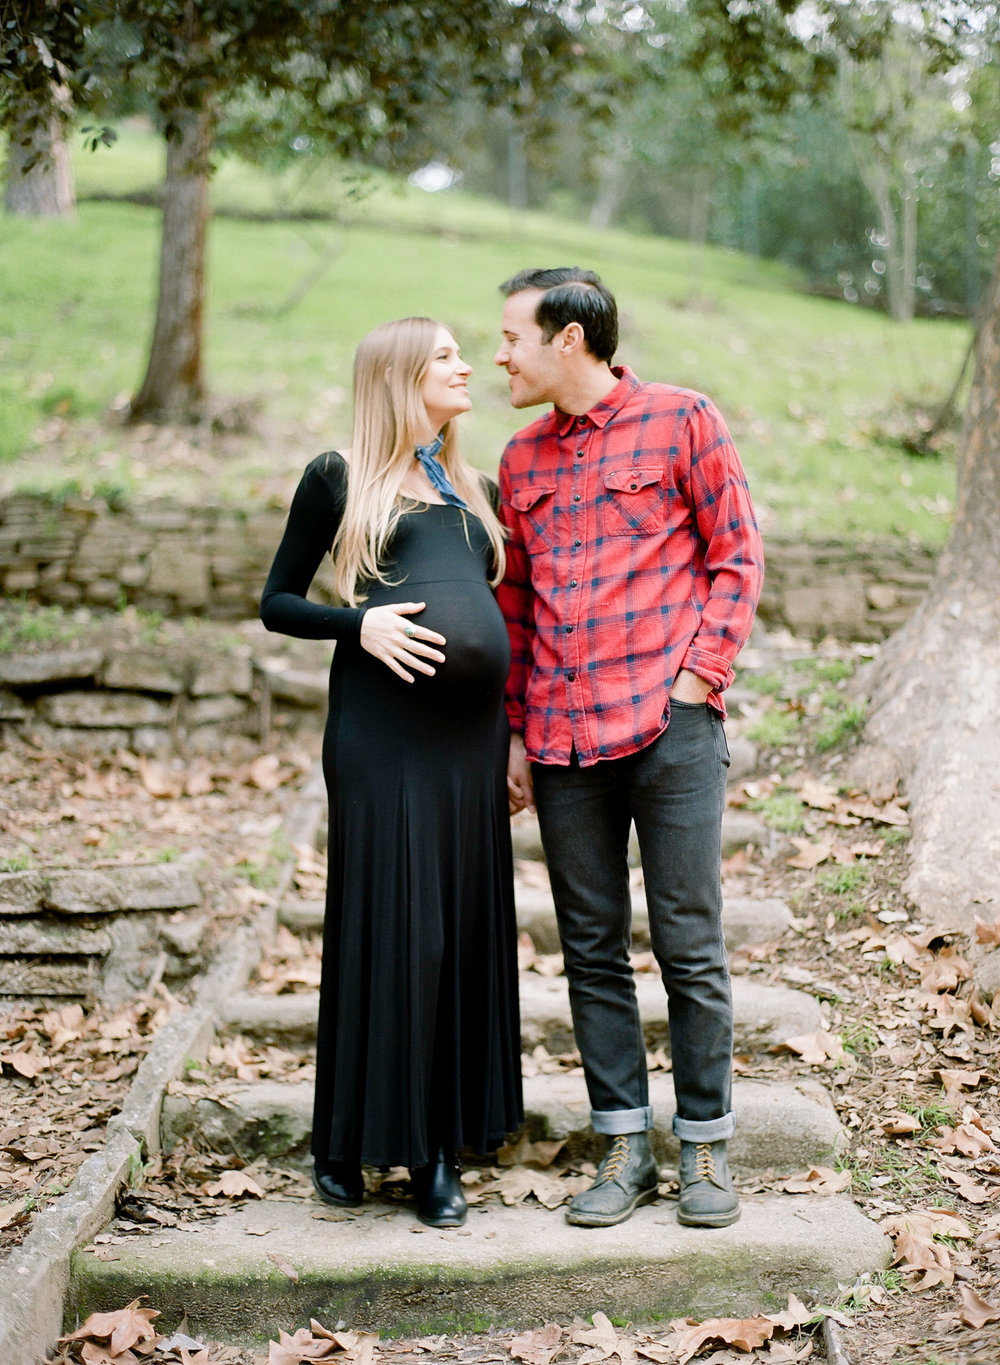 Chrissy & David Maternity Session-39.jpg